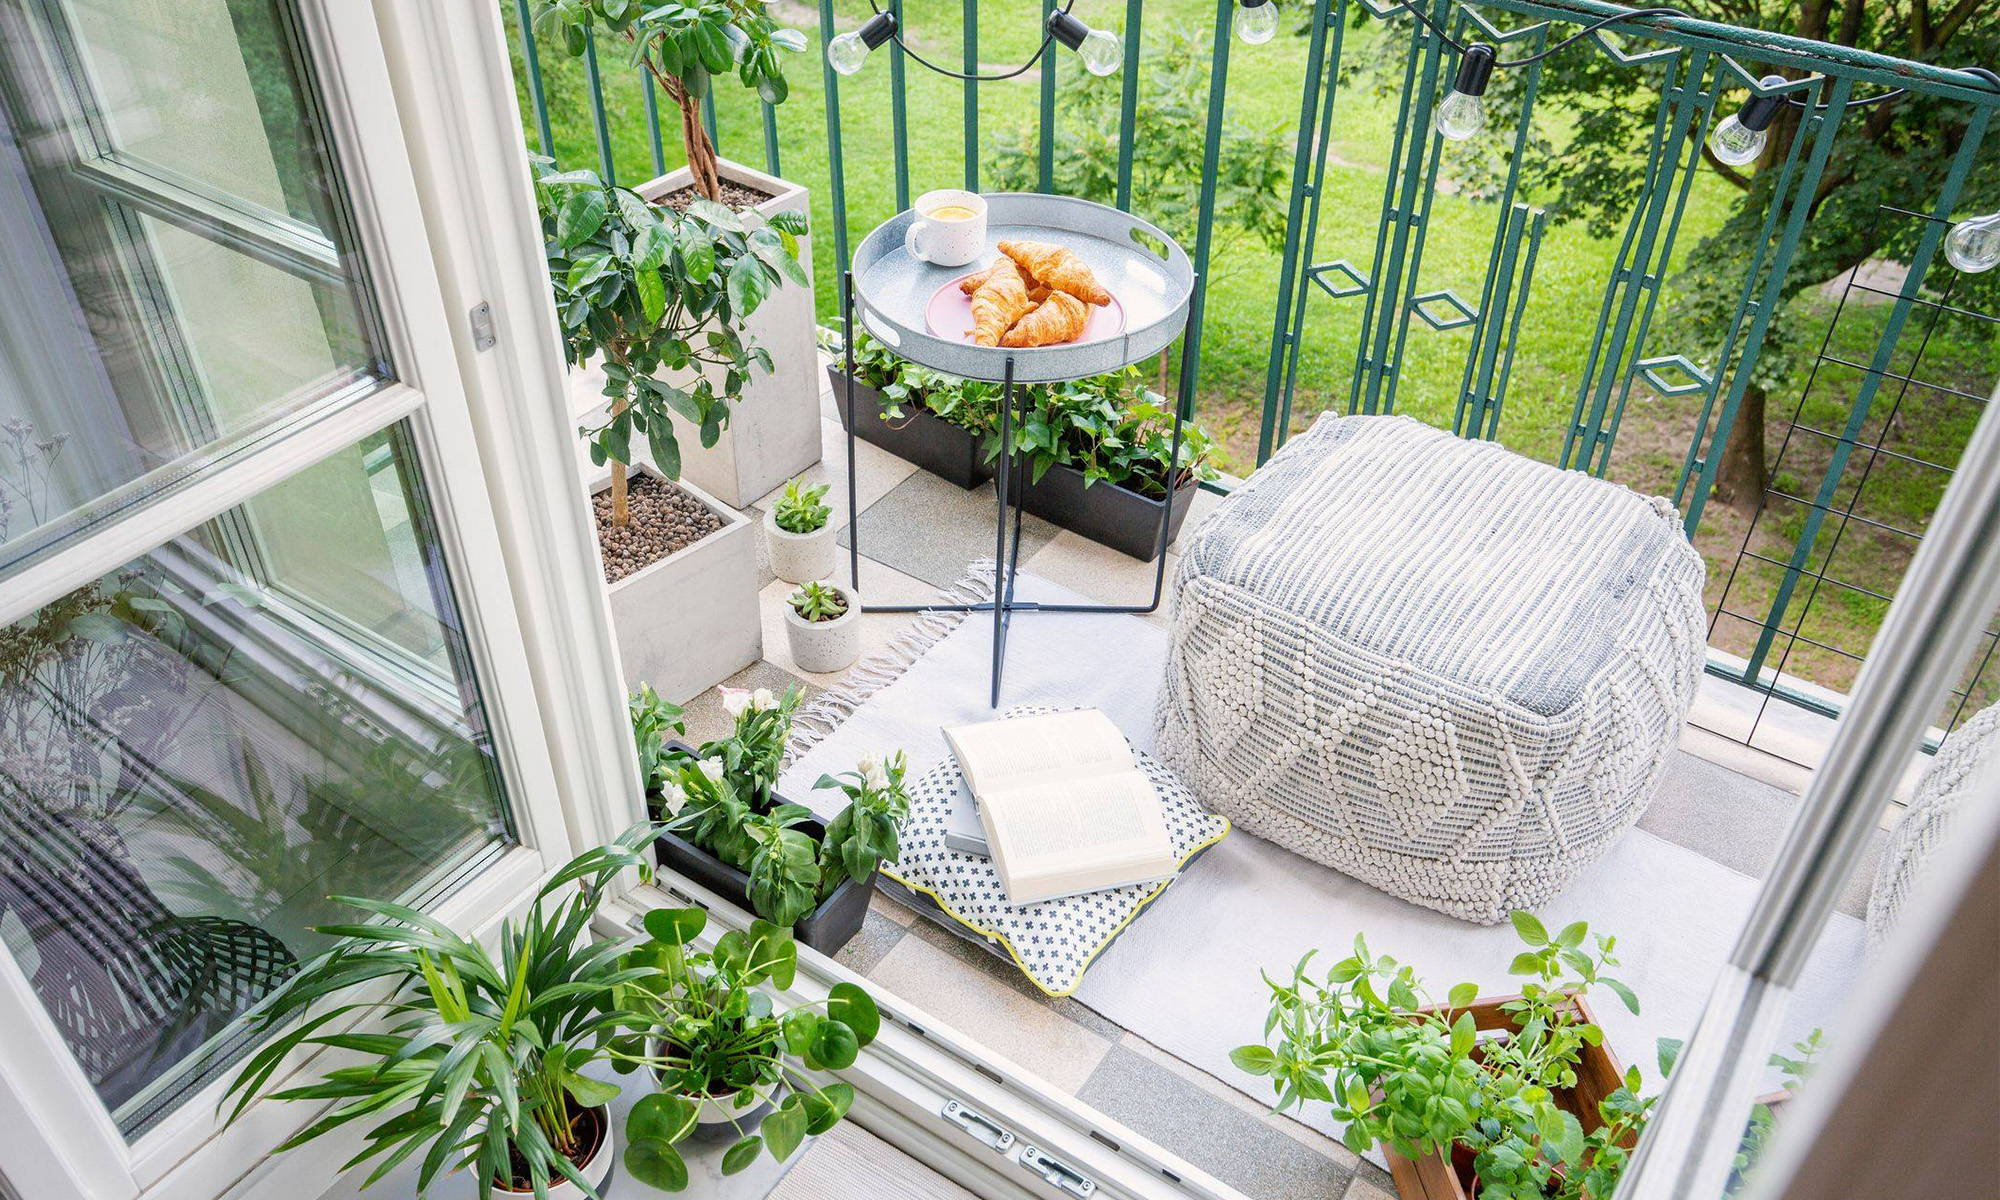 Some Tips For Decorating A Balcony Garden